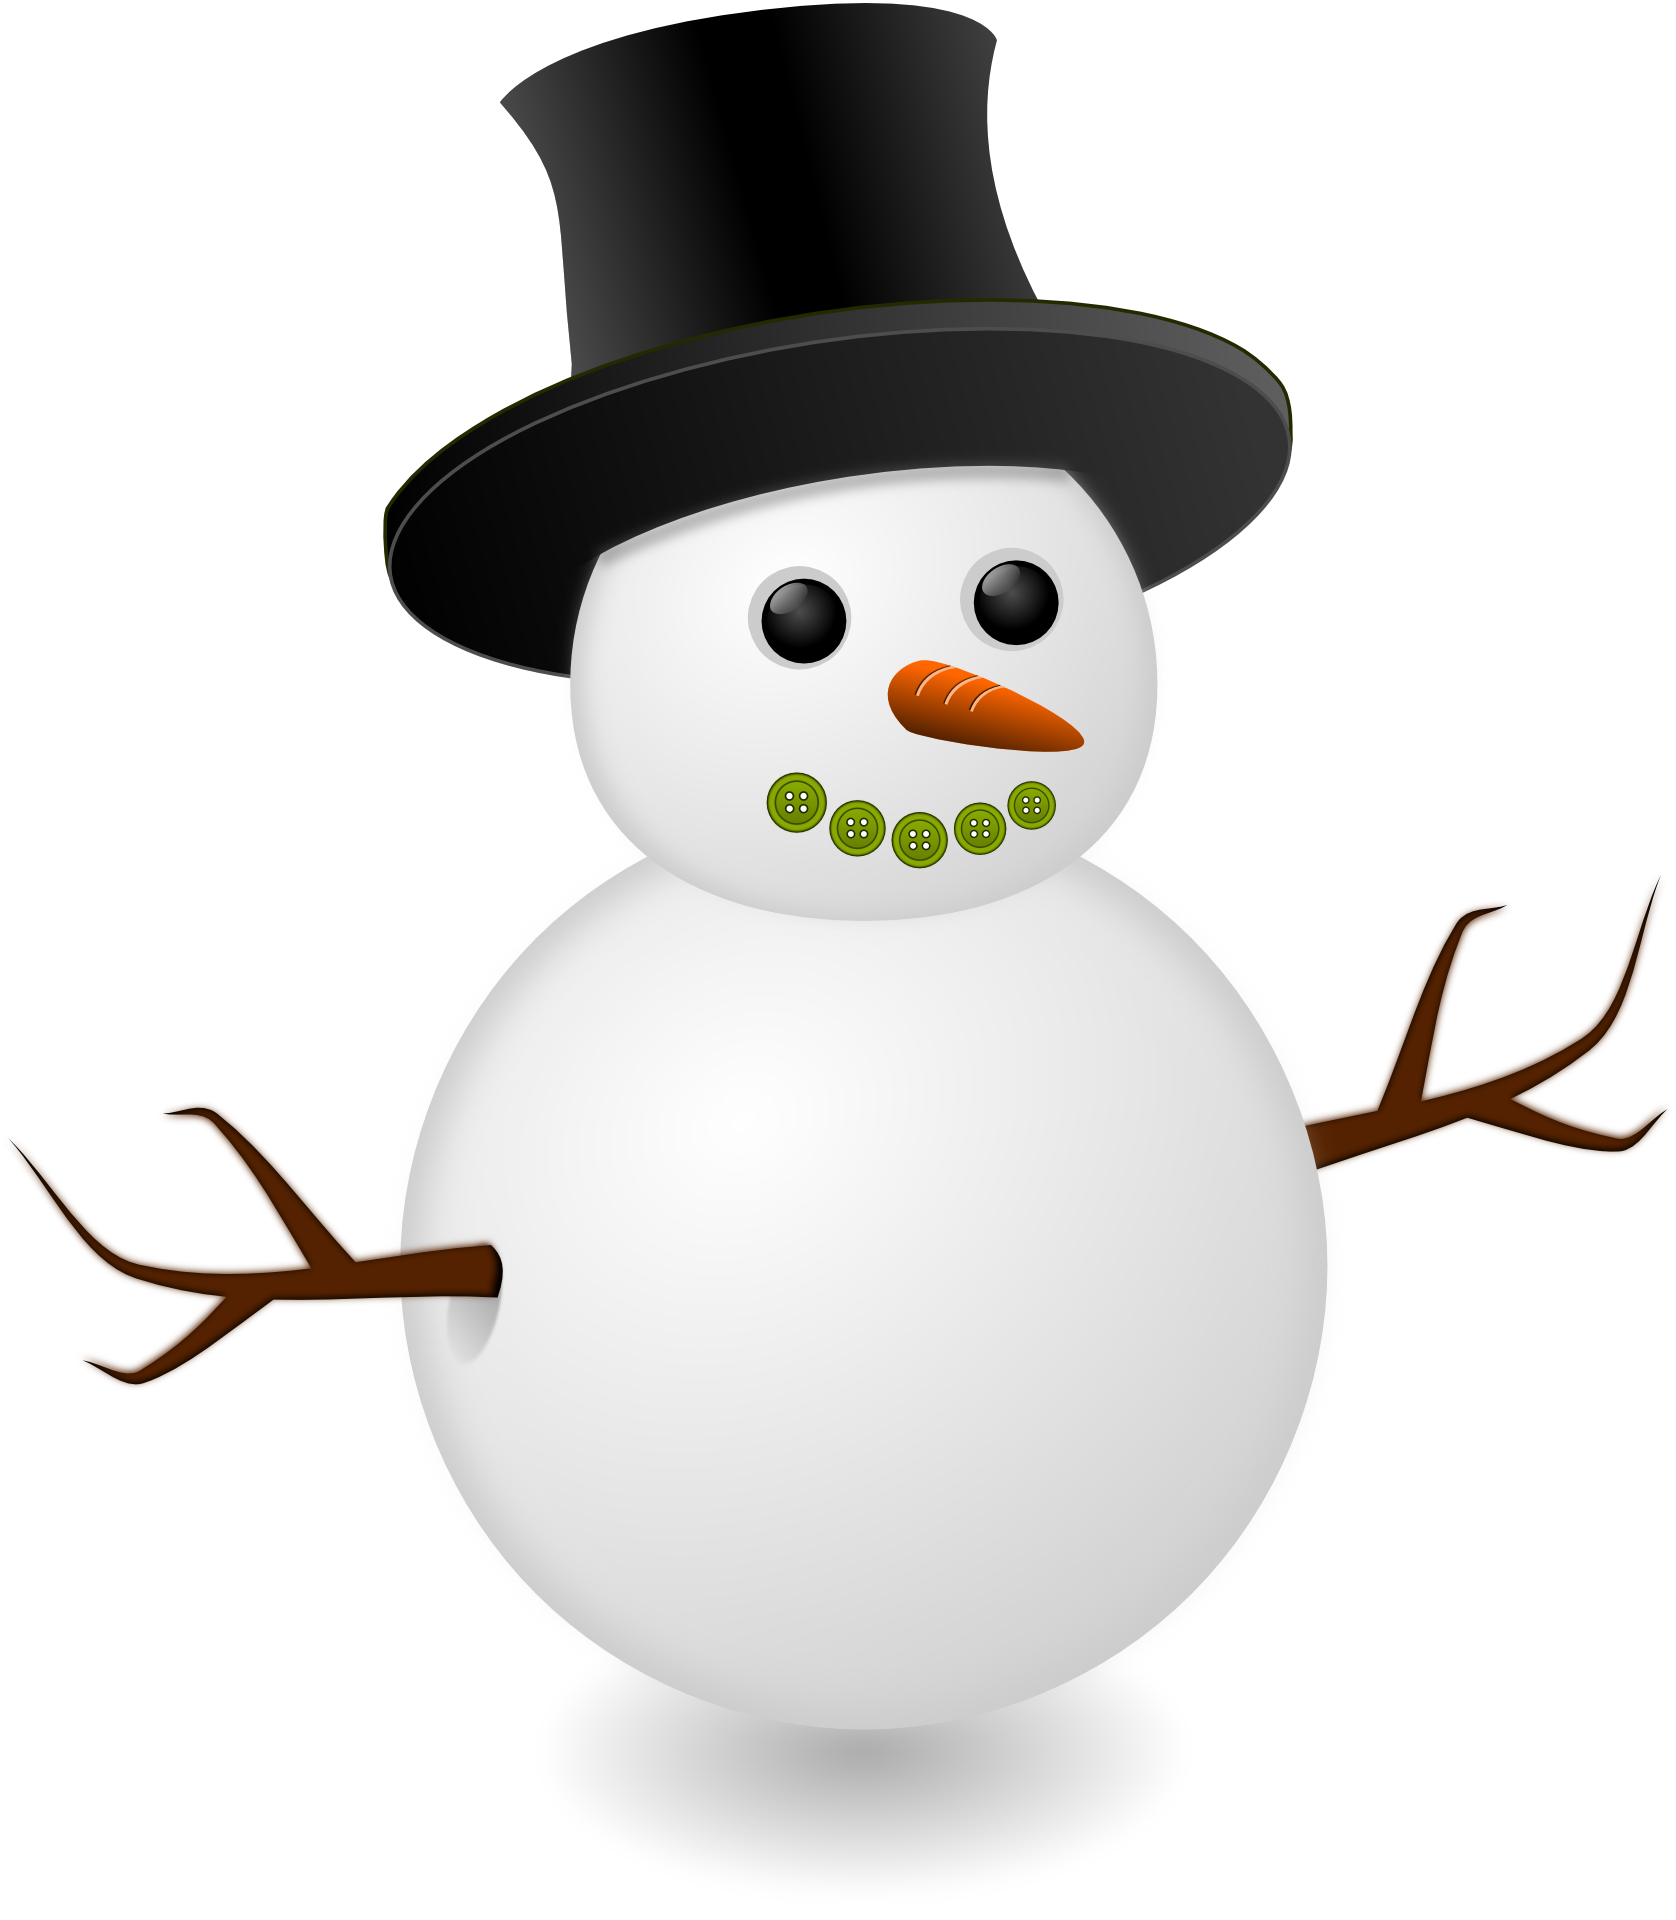 Cute snowman with black hat vector